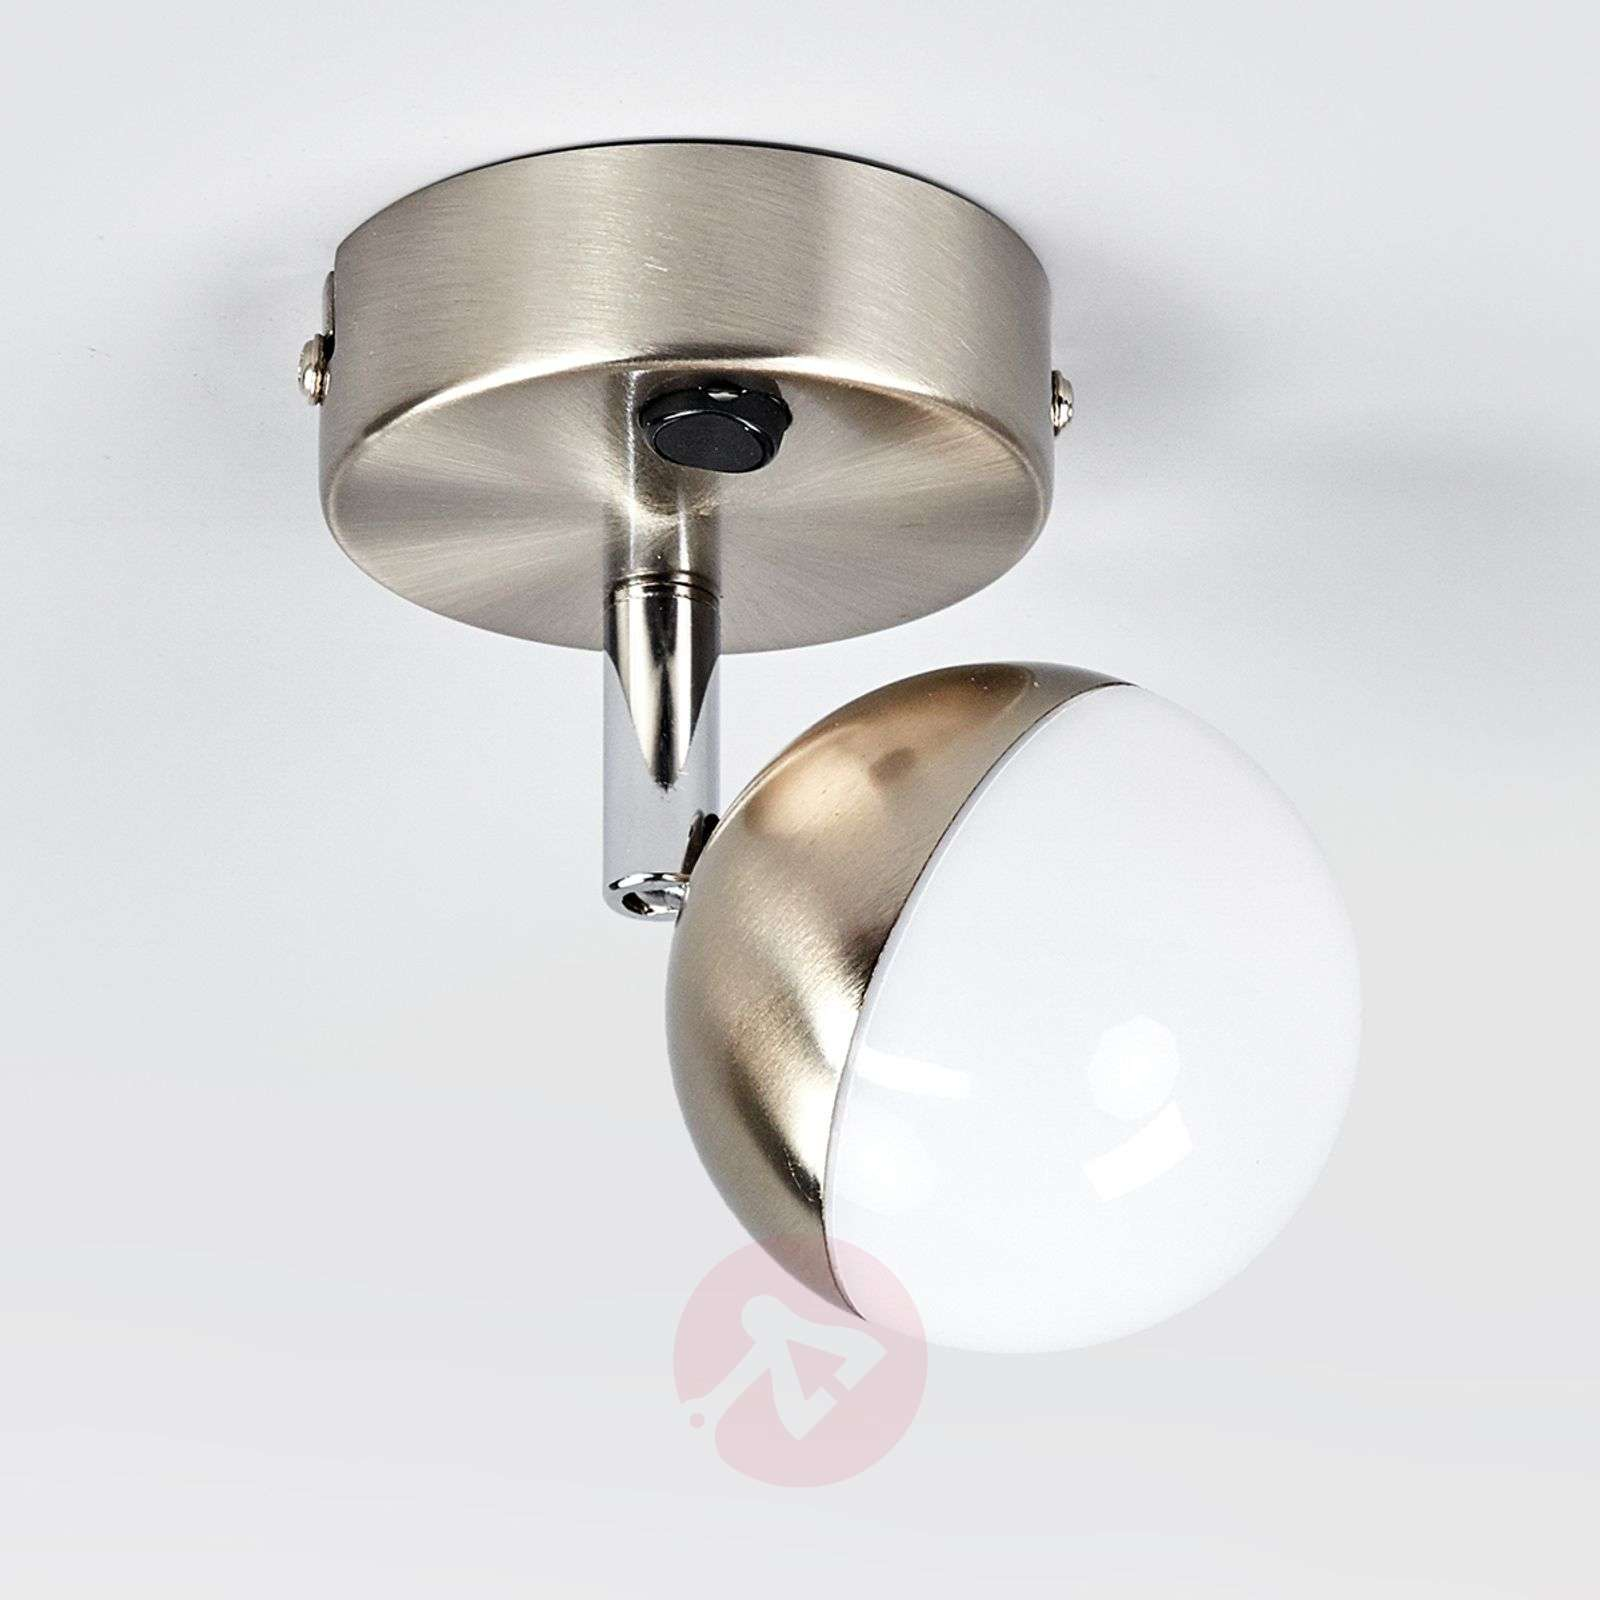 Jonne LED spotlight for walls or ceilings-9987055-04